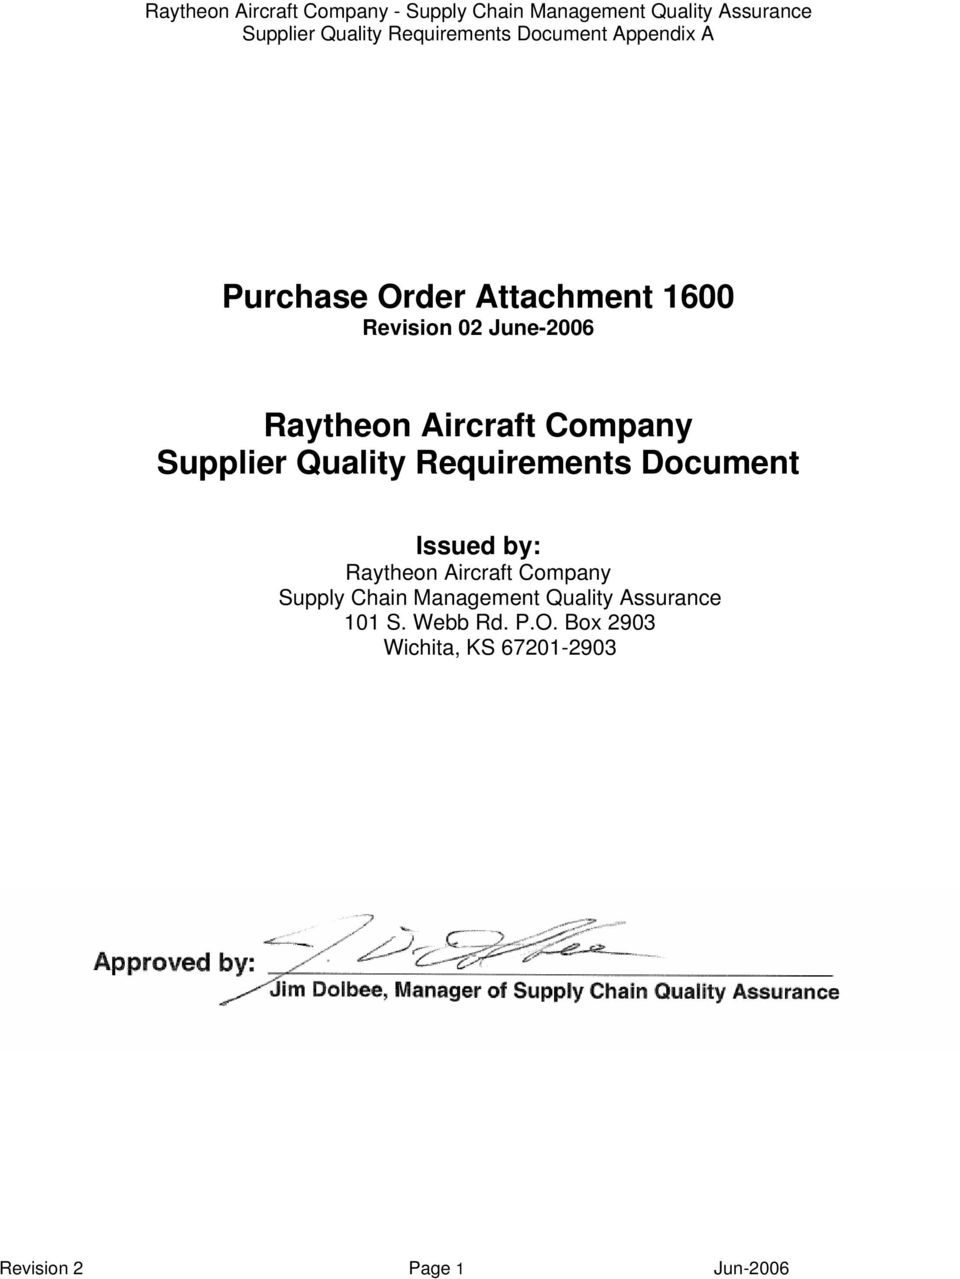 Raytheon Aircraft Company Supply Chain Management Quality Assurance